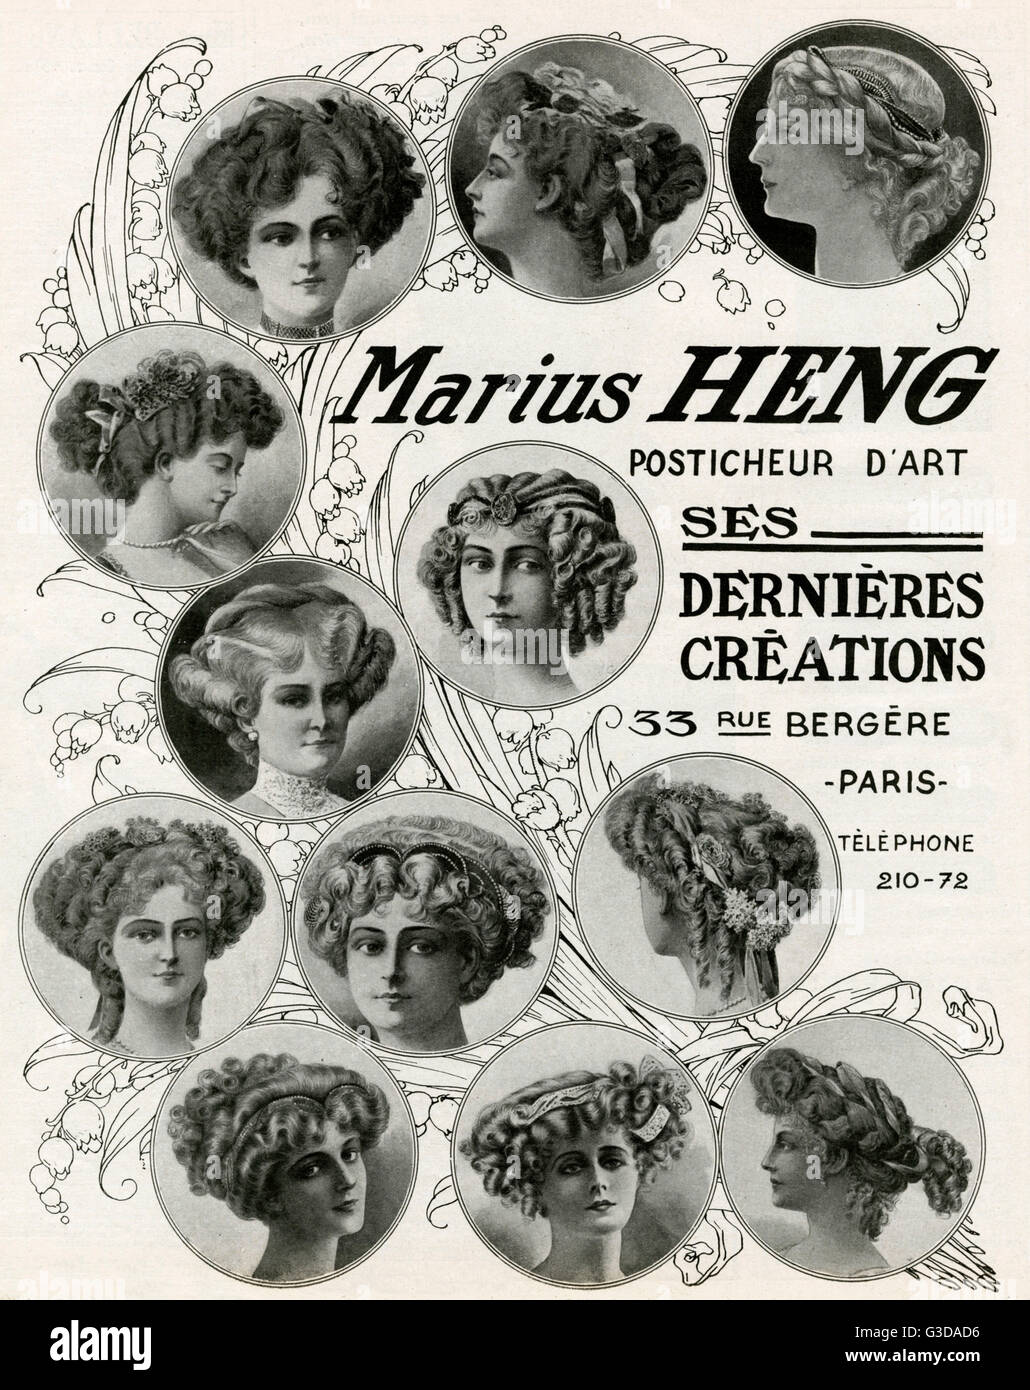 Latest creations for Marius Heng, hair styles with accessories.     Date: 1909 - Stock Image